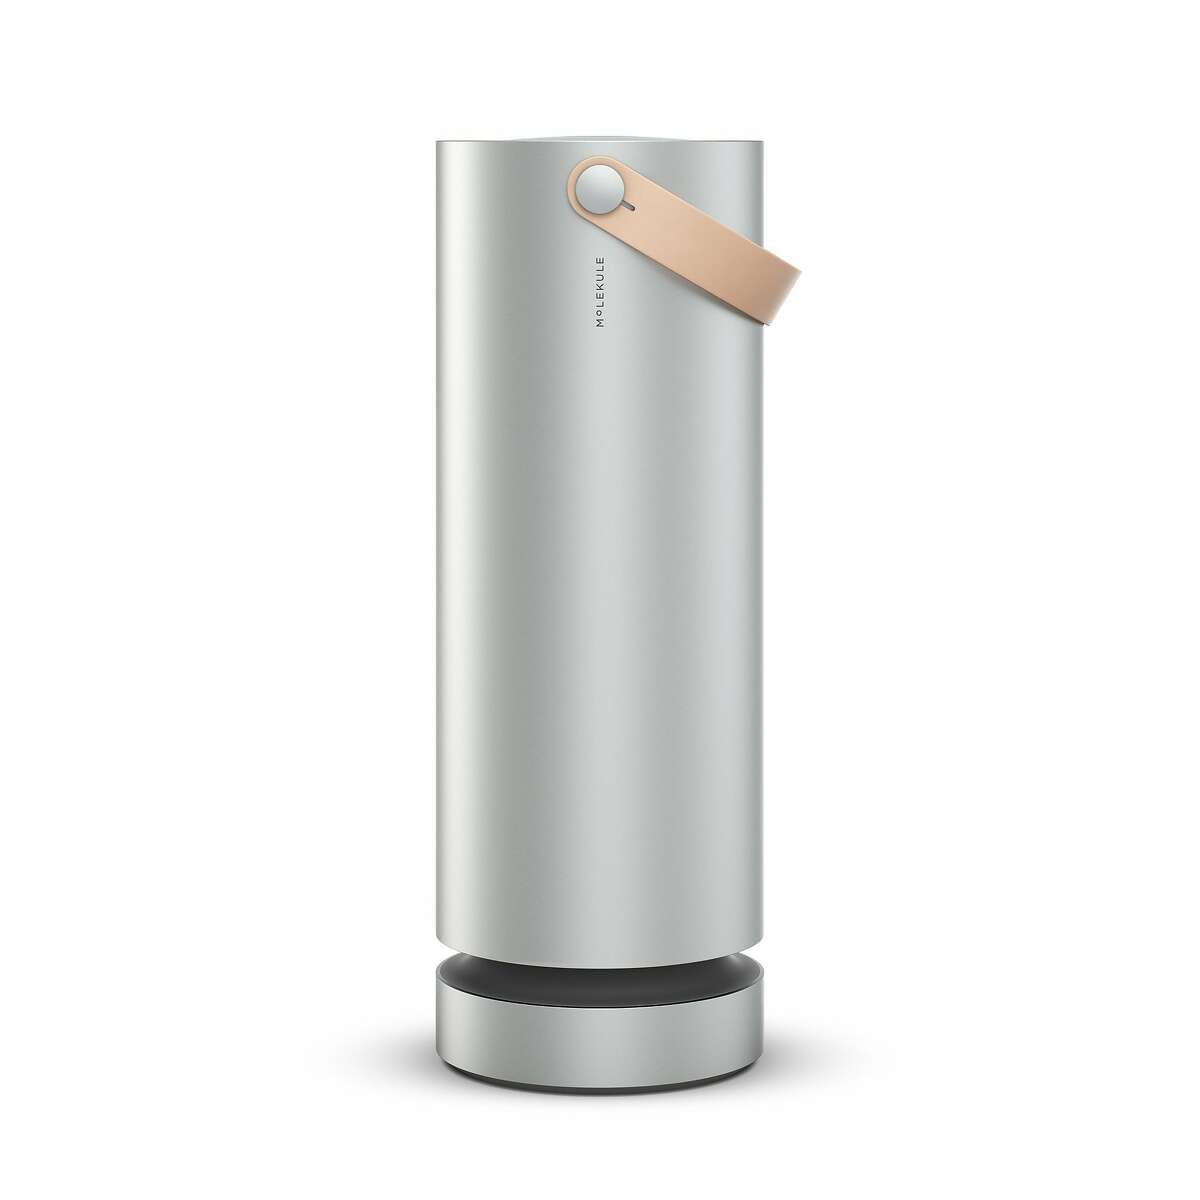 Molekule's air purifier ($799, not including air filter subscription) uses nanotechnology at the molecular level to eliminate airborne allergens, mold, bacteria, viruses, and volatile organic compounds (VOCs).